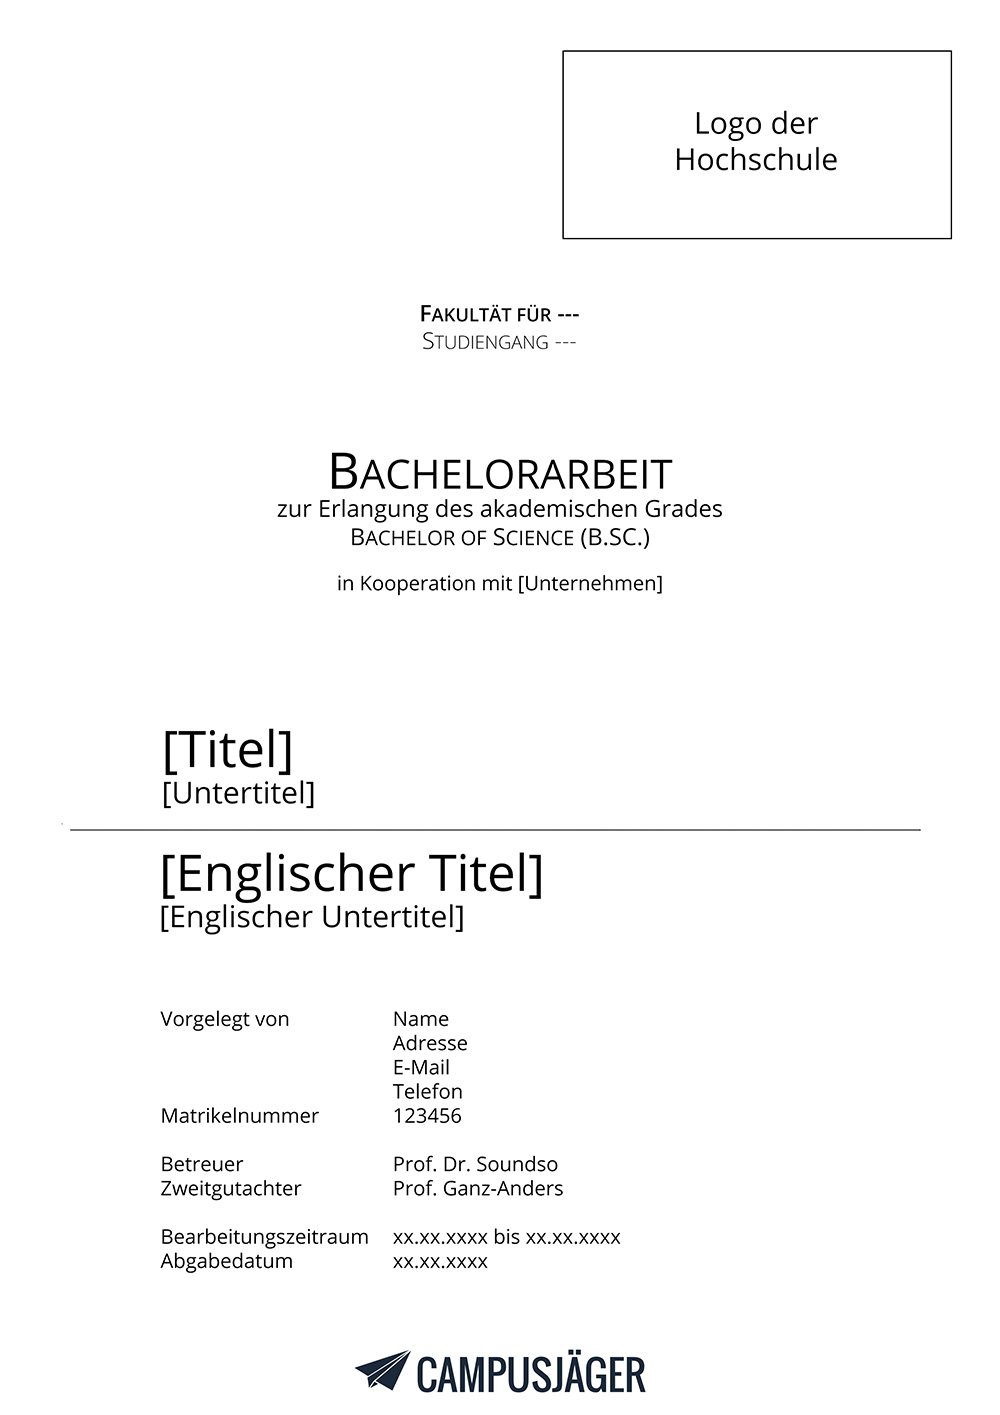 Bachelorarbeit iota ghost writer 2019